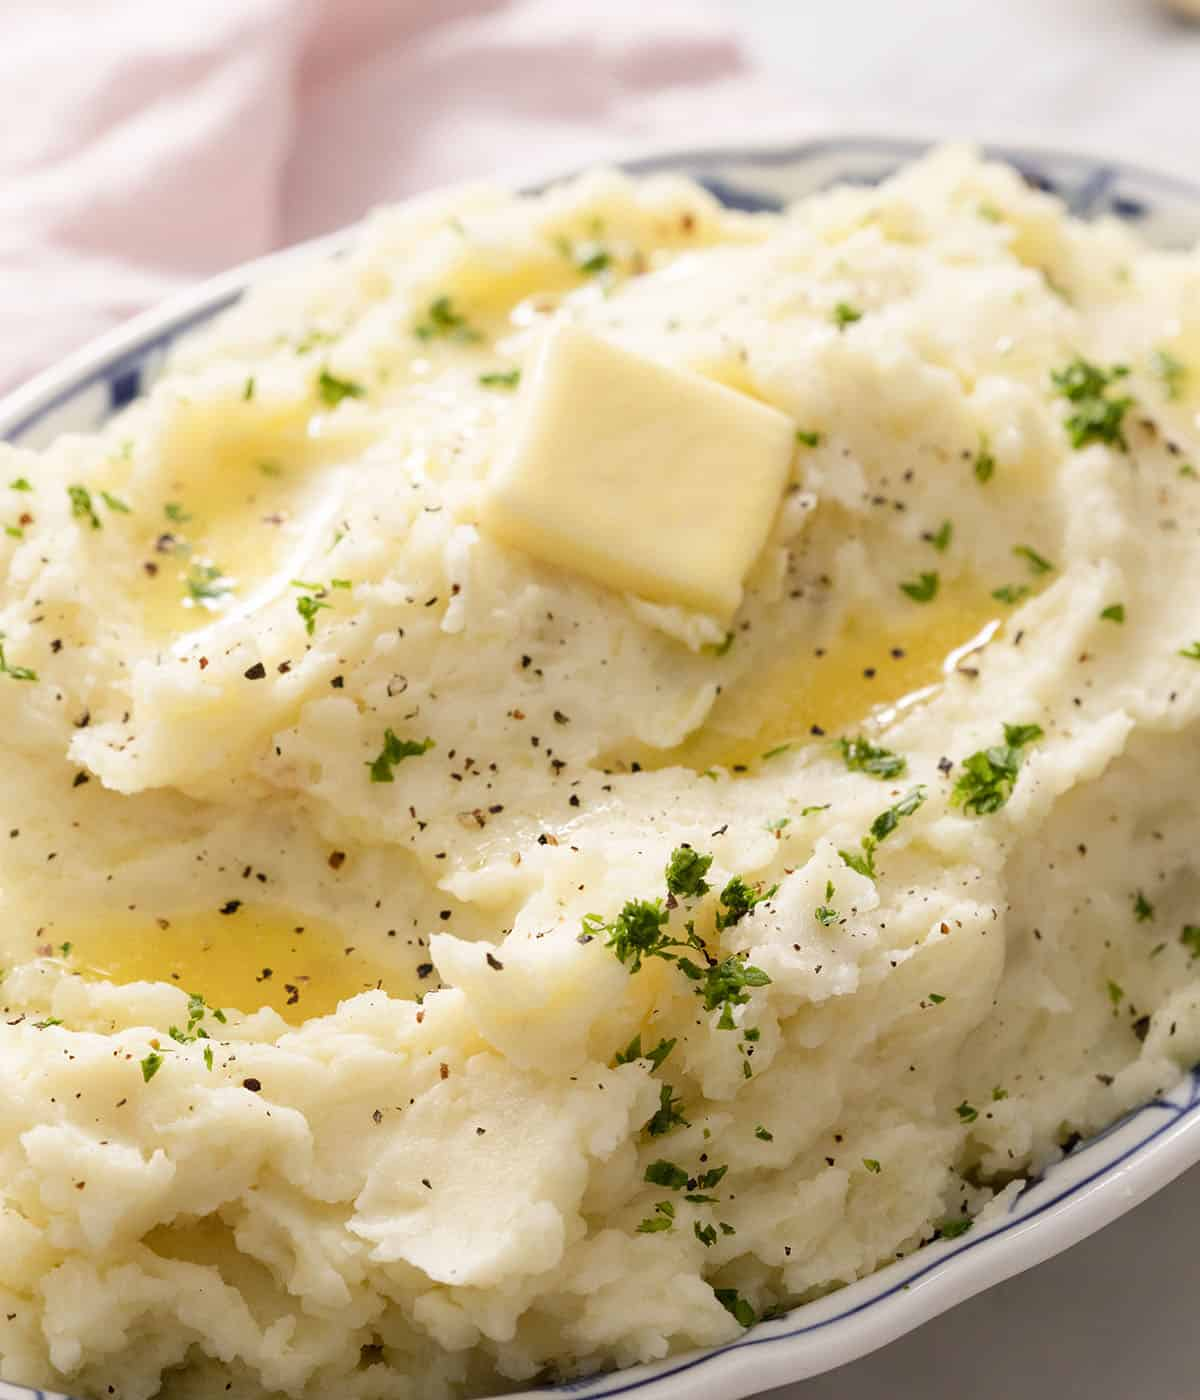 A big serving dish of mashed potatoes with a pat of butter melting on top.